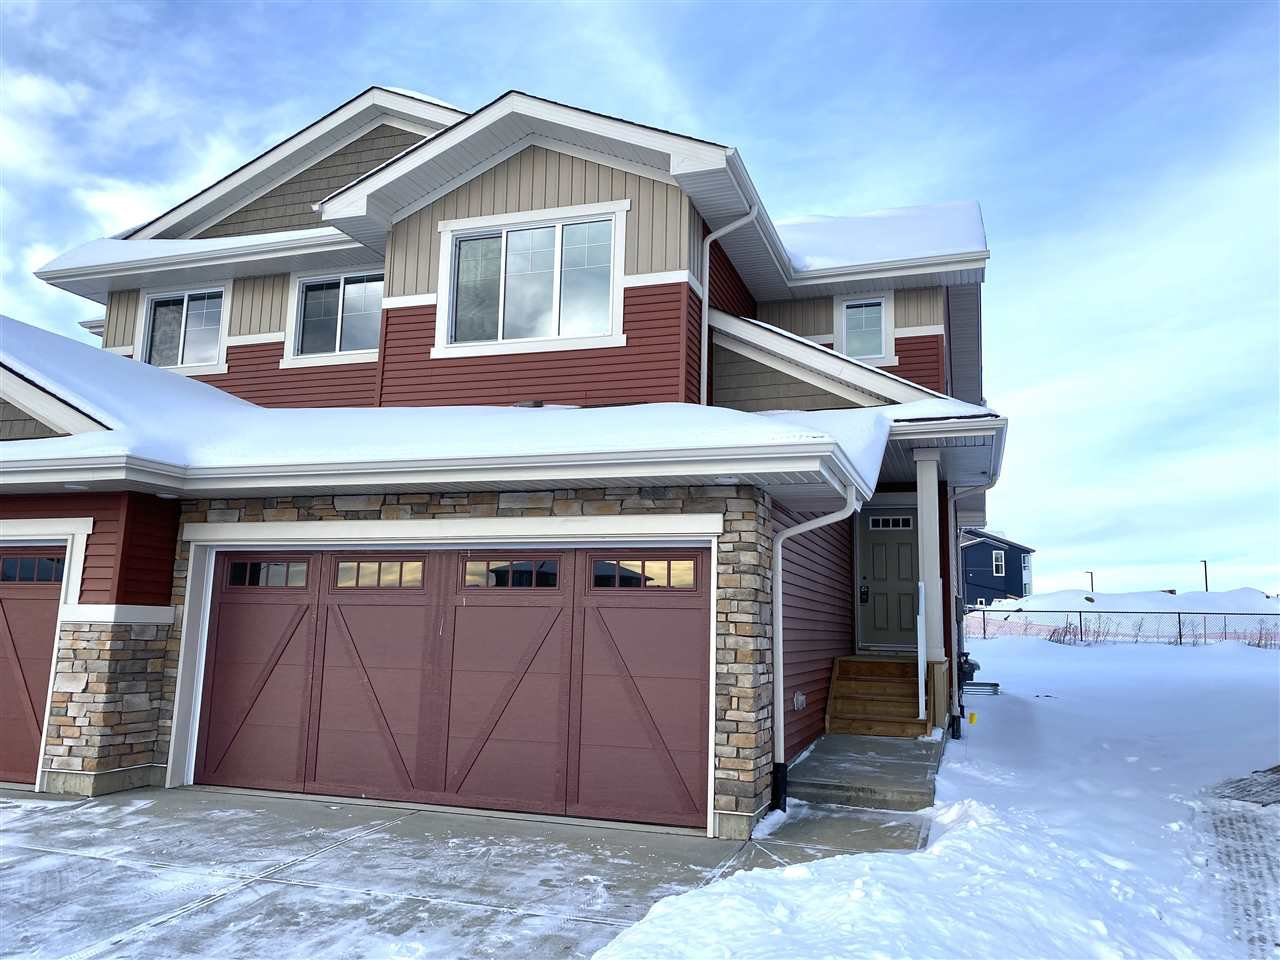 Main Photo: 30 JUNEAU WY: St. Albert House Half Duplex for sale : MLS®# E4185074